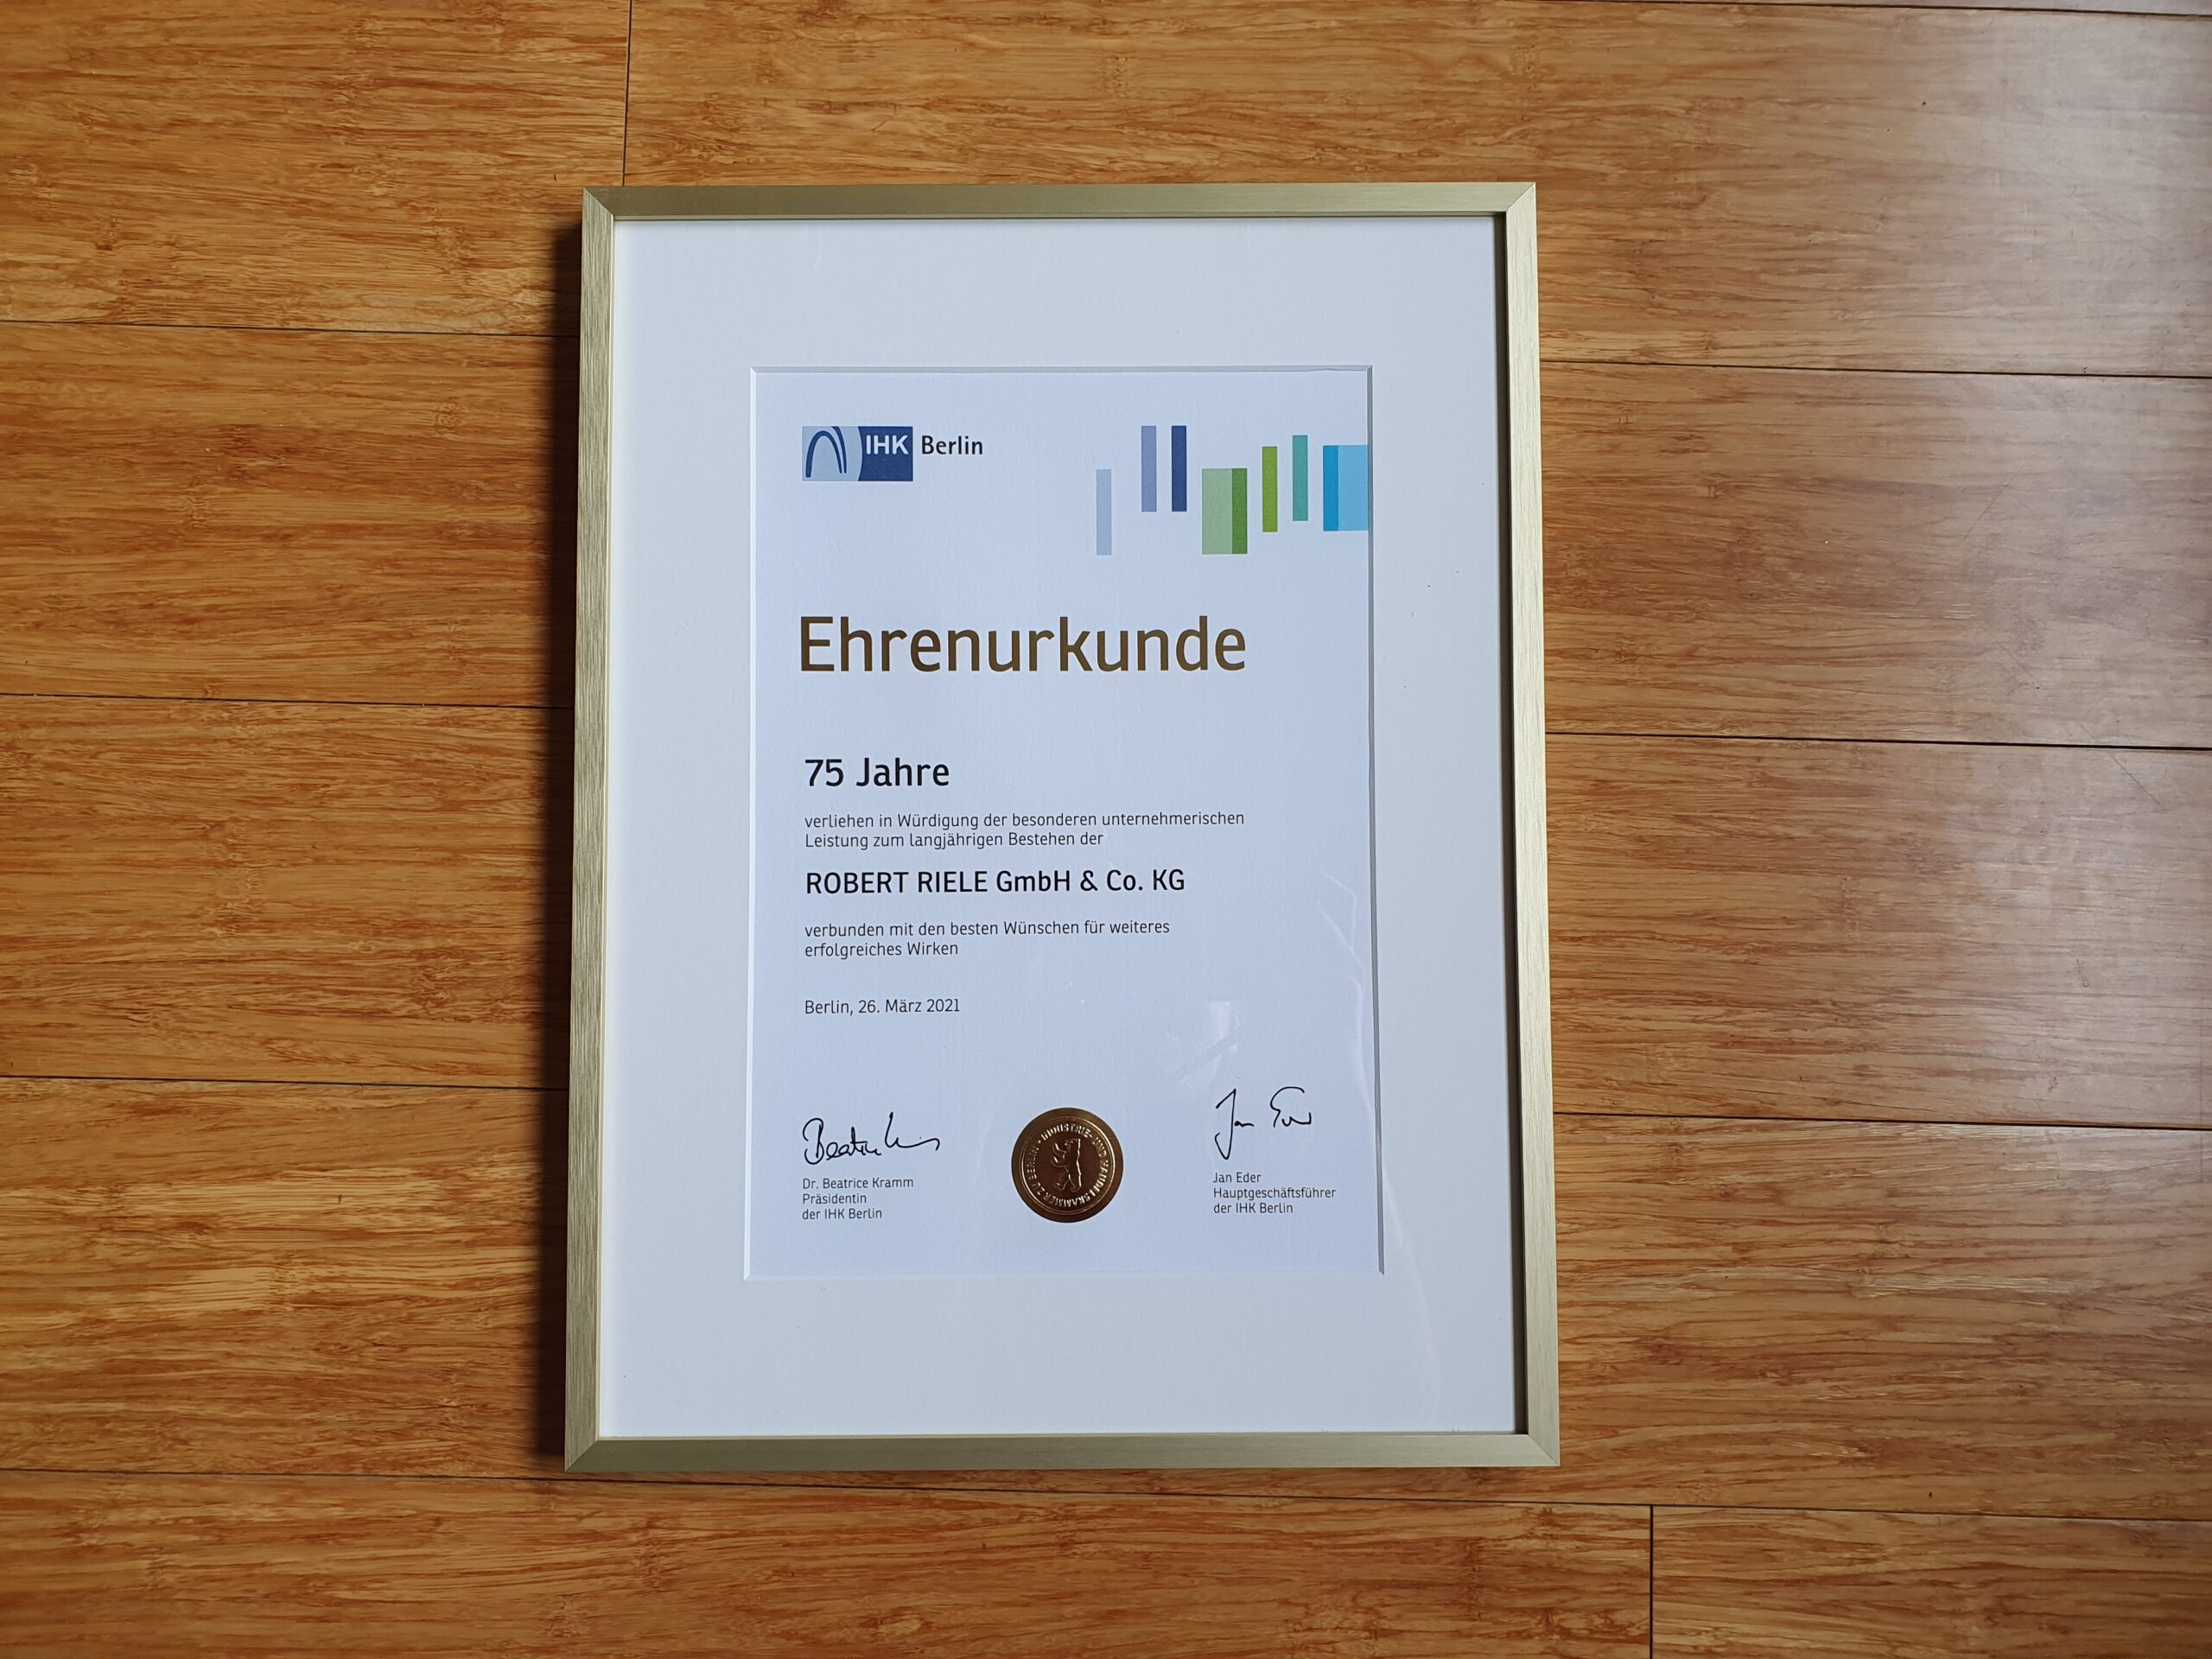 Certificate of Honor from the IHK